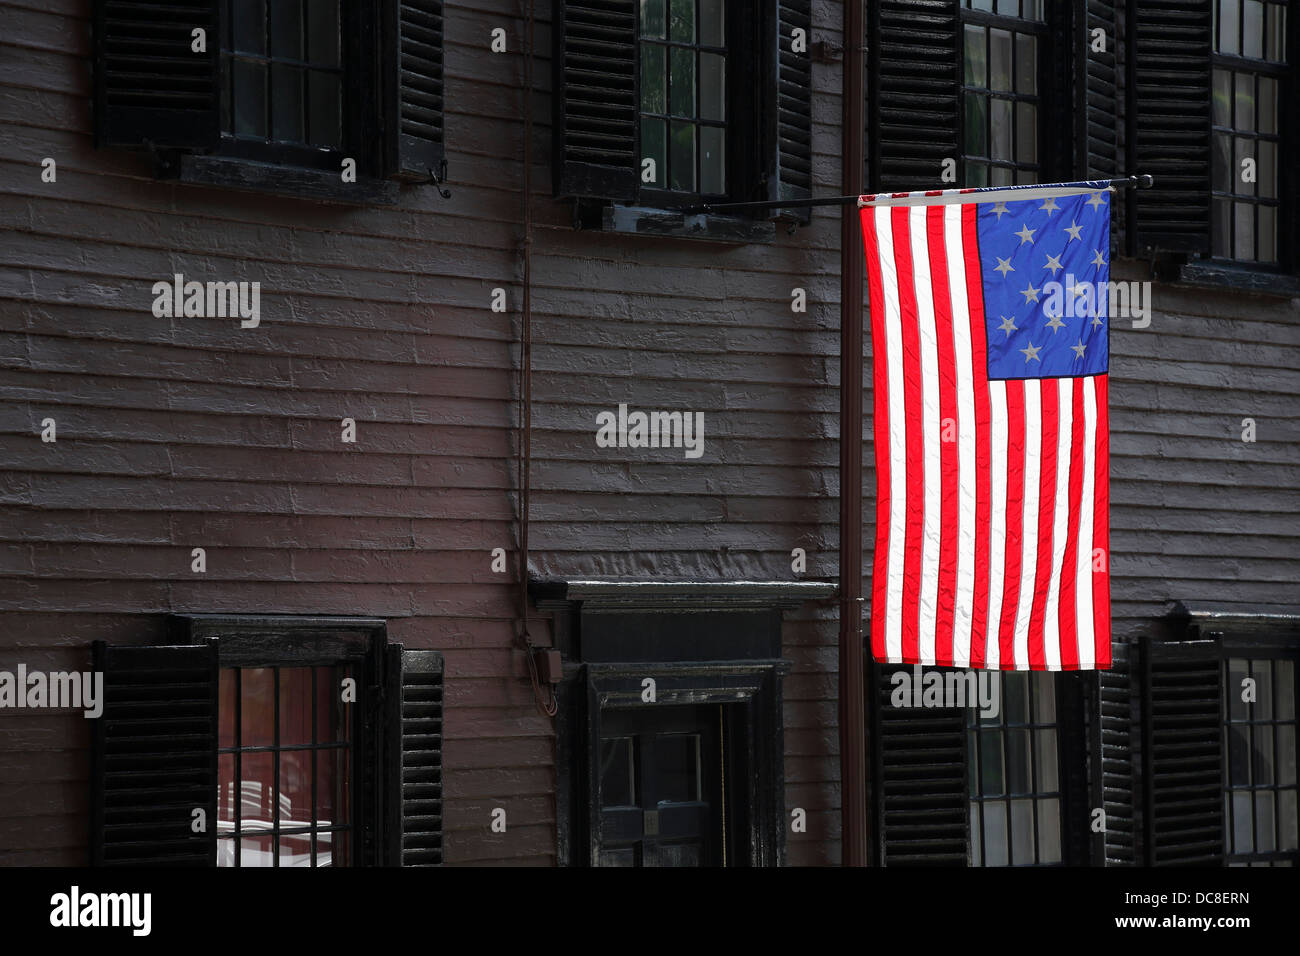 A 15 star flag flying in front of a colonial era house in the Charlestown neighborhood of Boston, Massachusetts - Stock Image